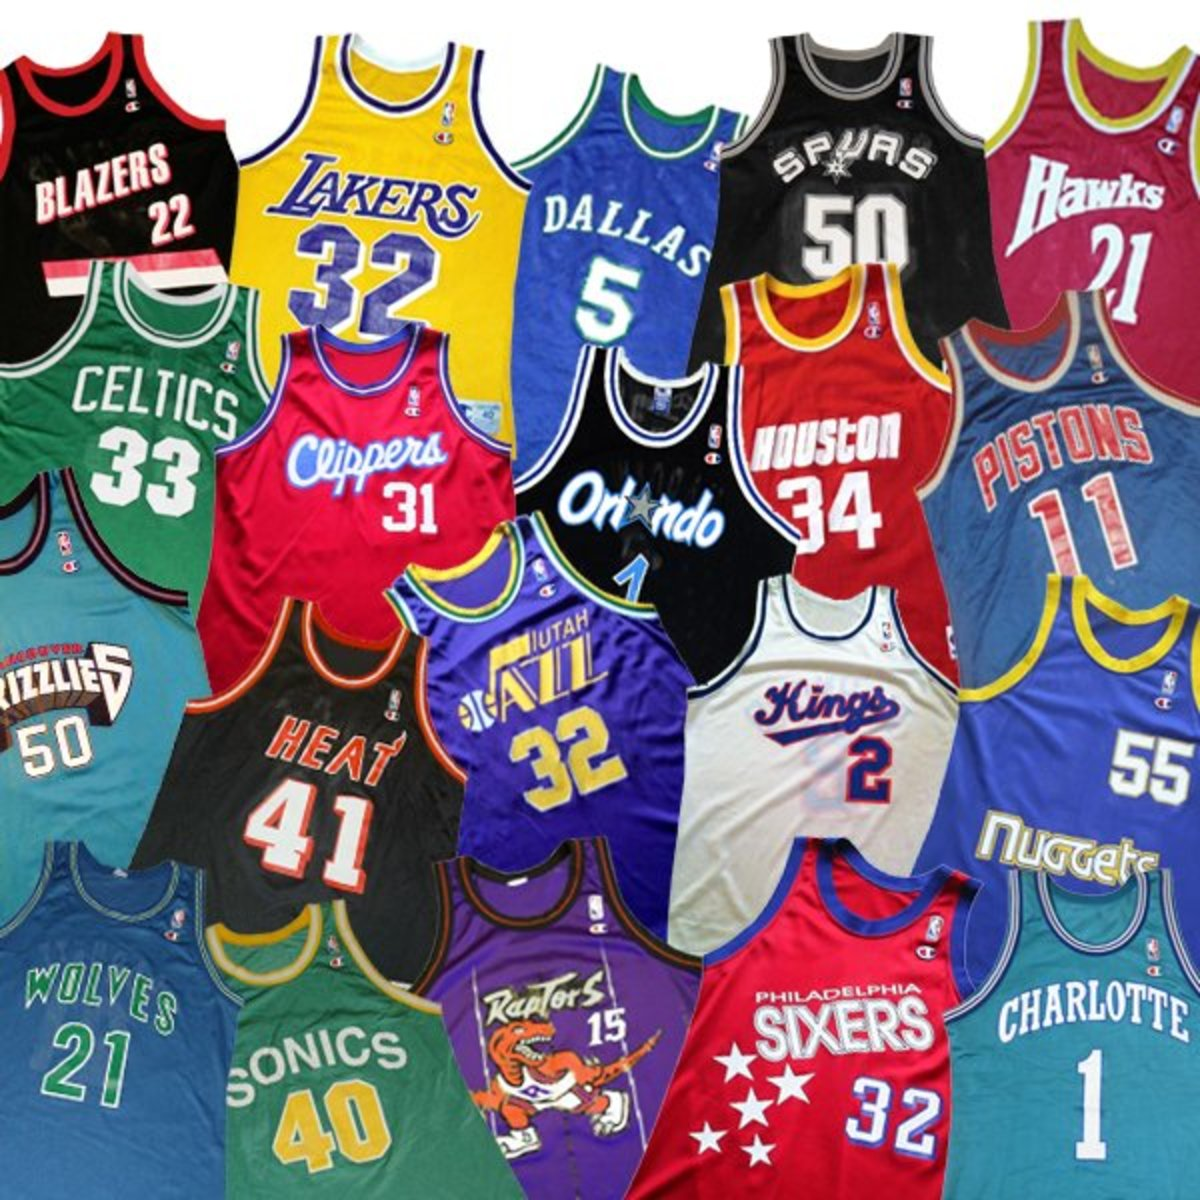 5 Best Selling NBA Jerseys of All Time